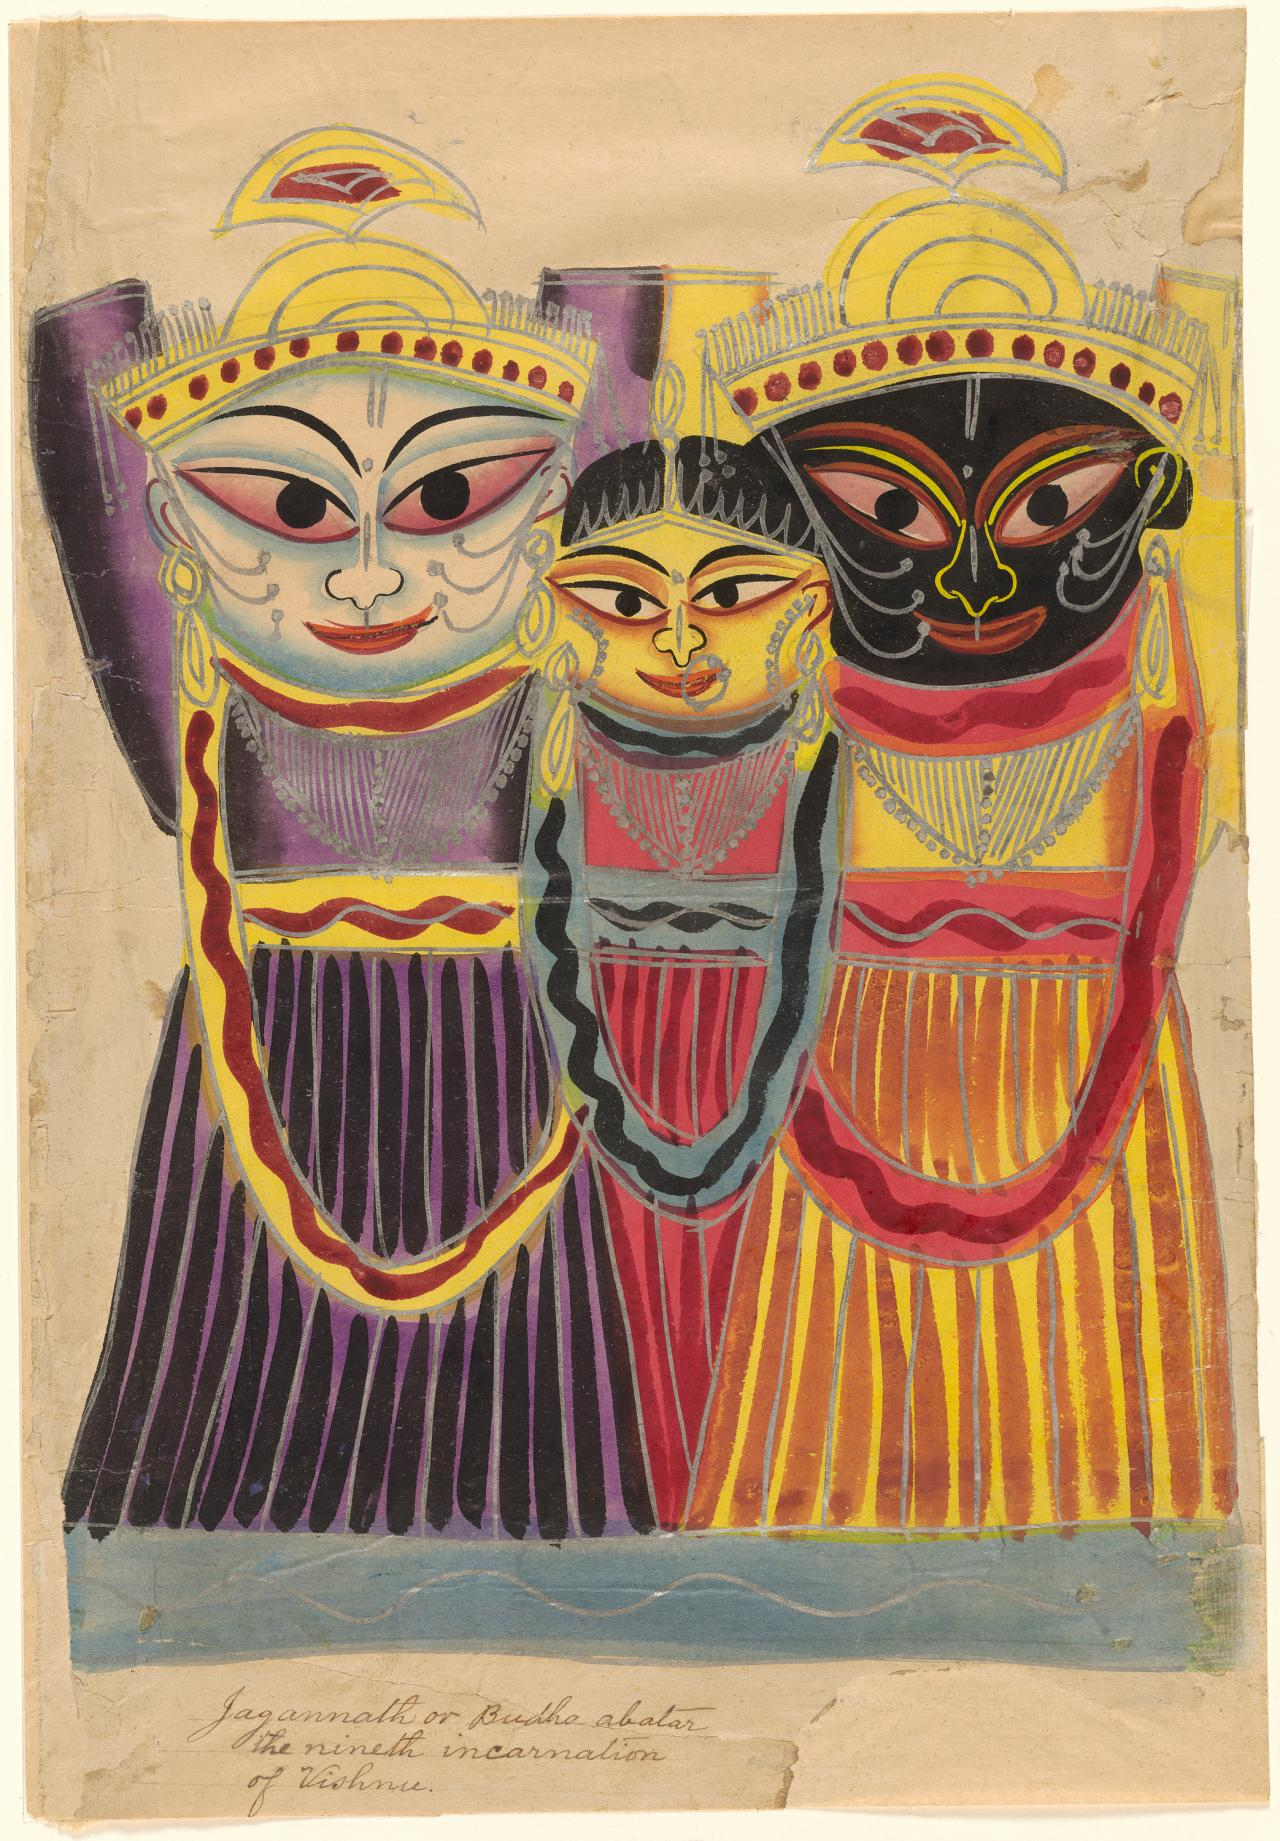 The Jagannatha trio: Balbhadra, Suehadra and Jagannatha